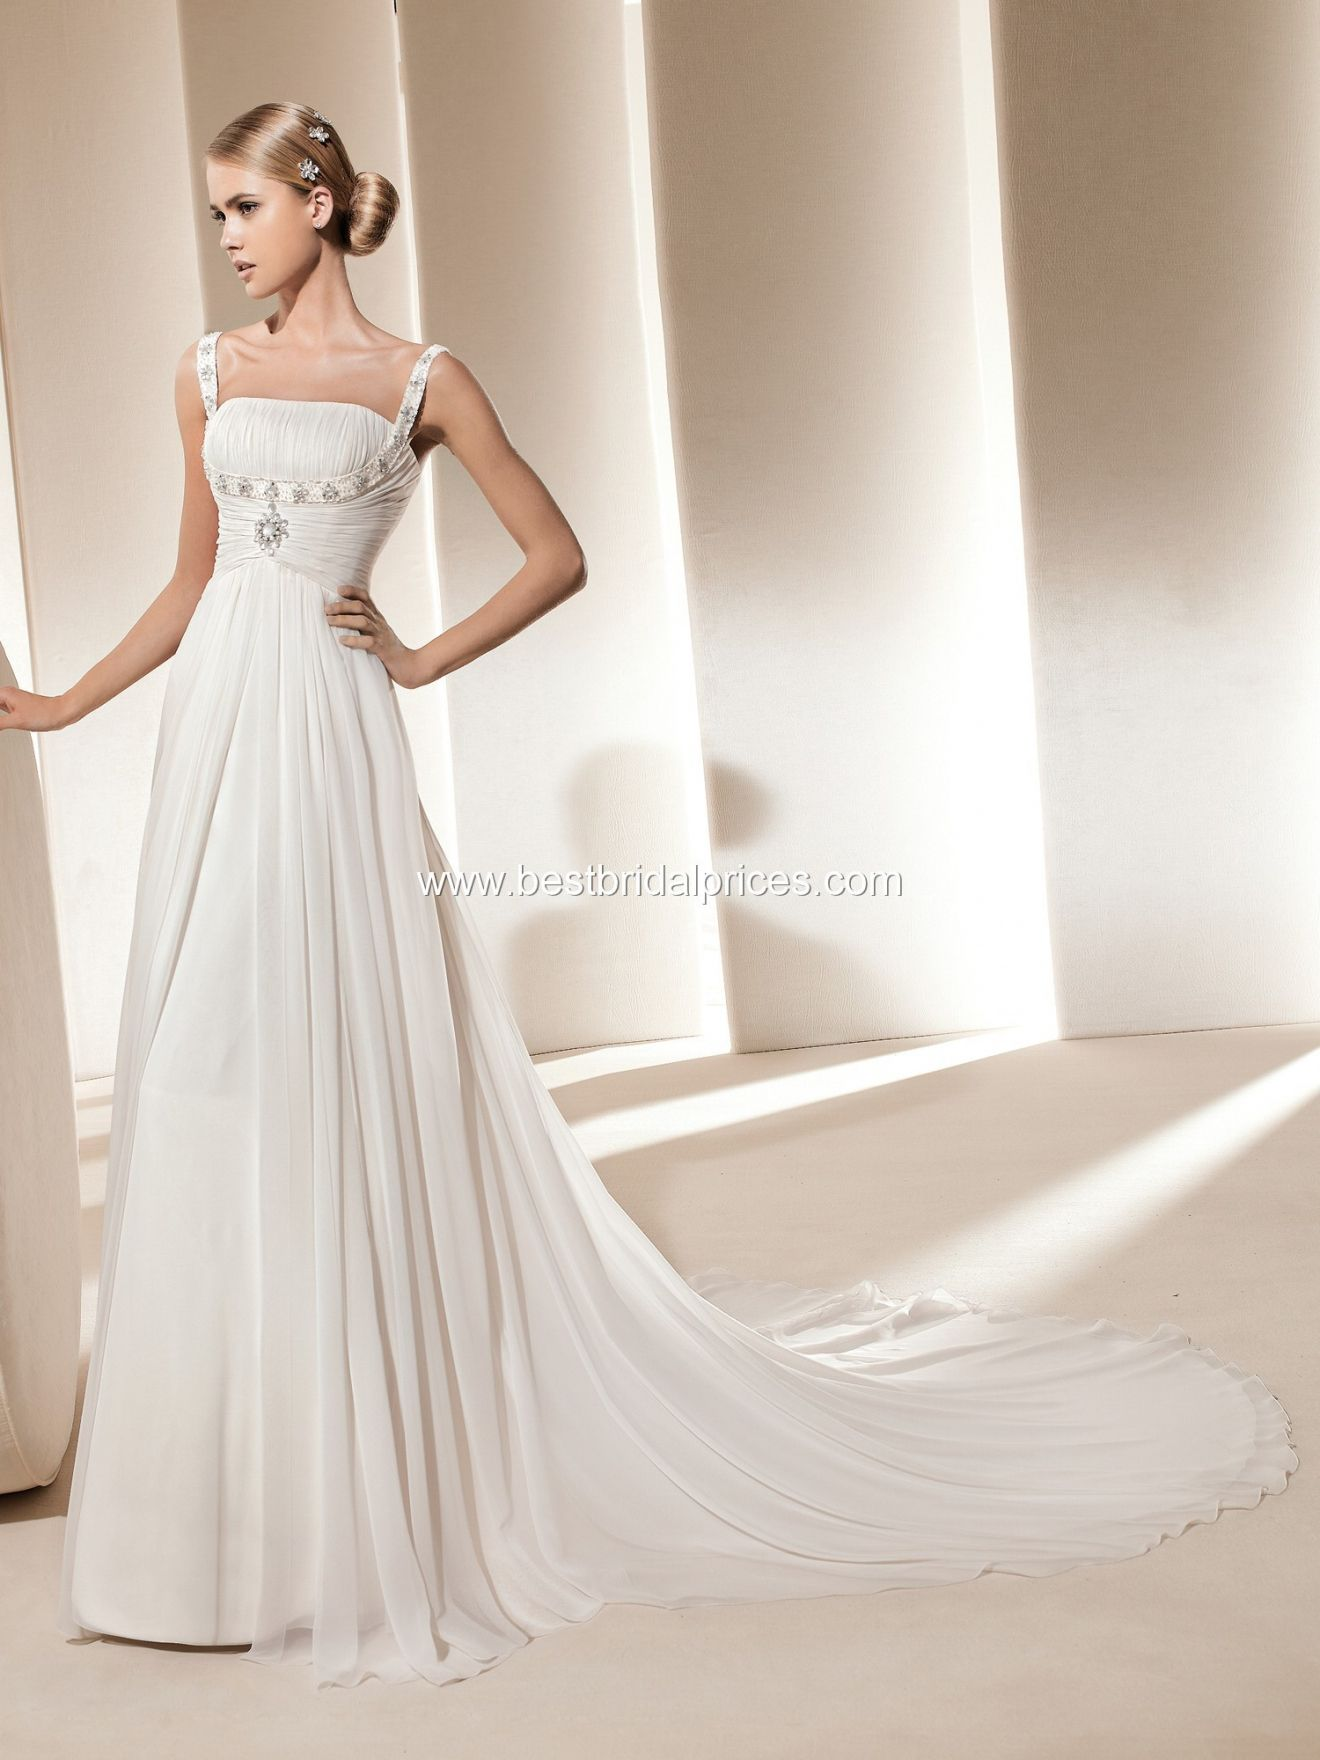 How much is a wedding dress   How Much are La Sposa Wedding Dresses  Wedding Dresses for